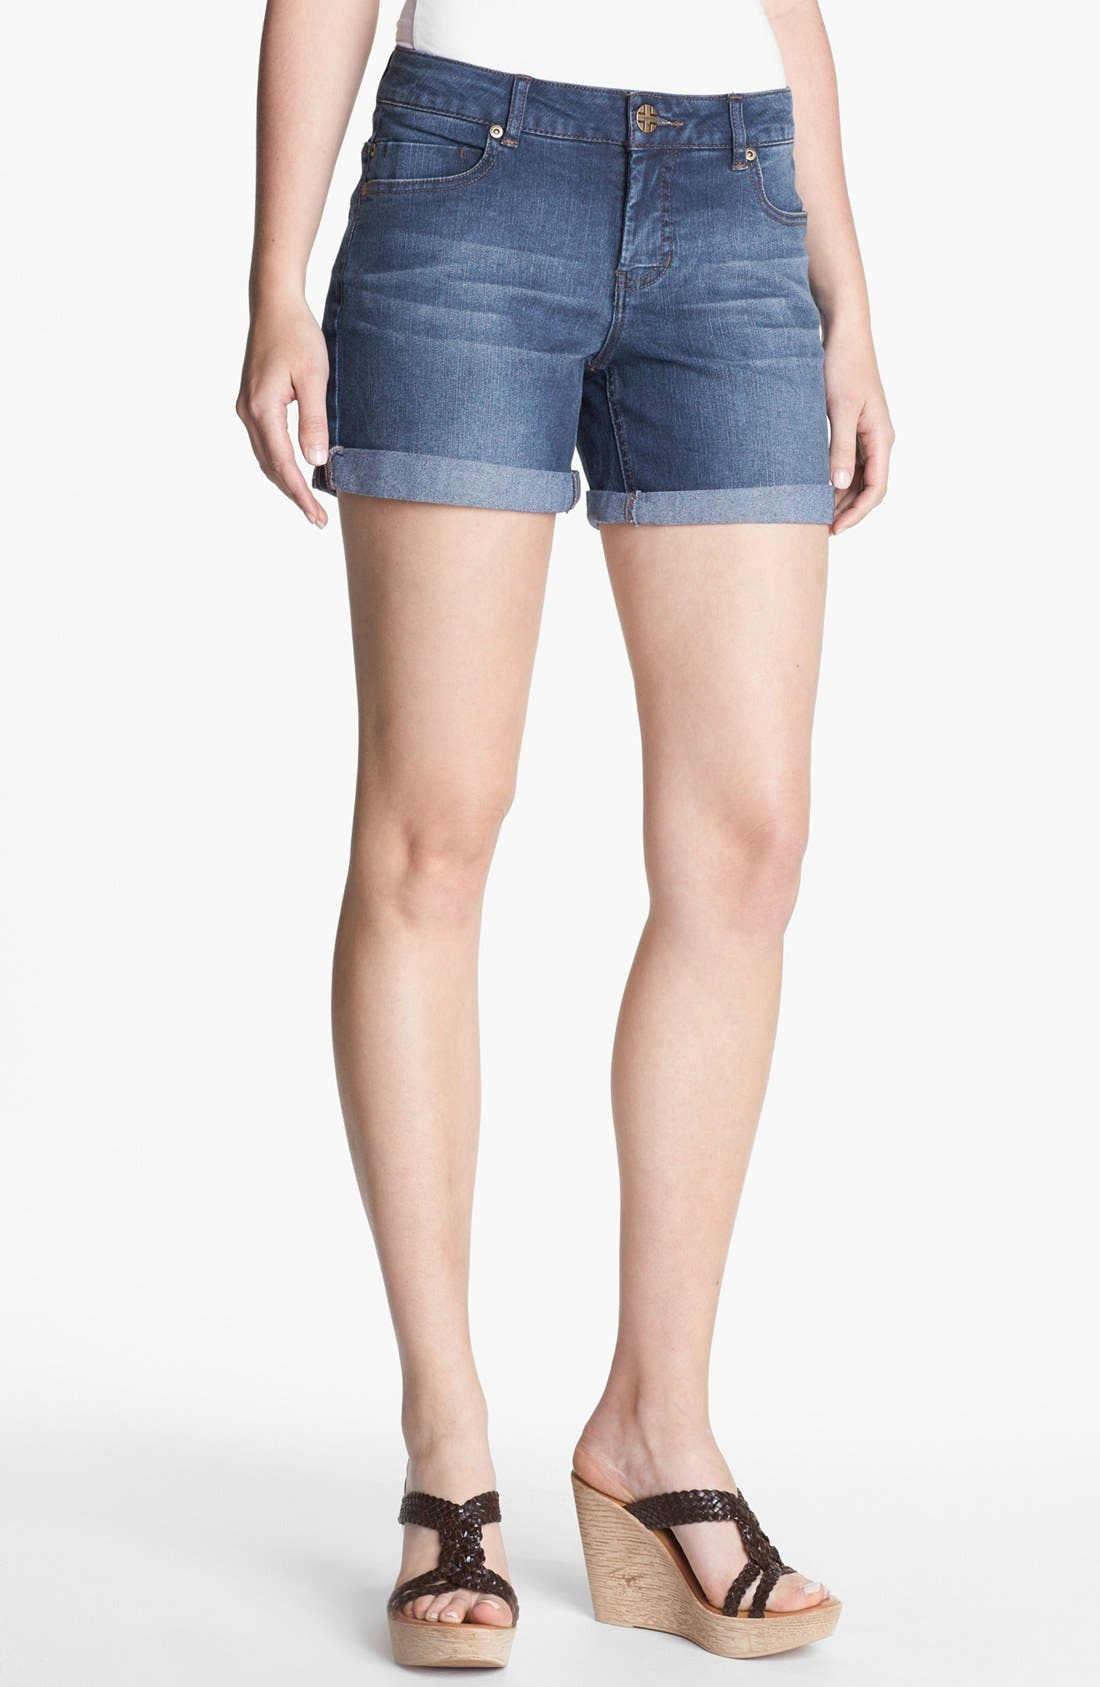 Alternate Image 1 Selected - Liverpool Jeans Company 'Linda' Denim Shorts